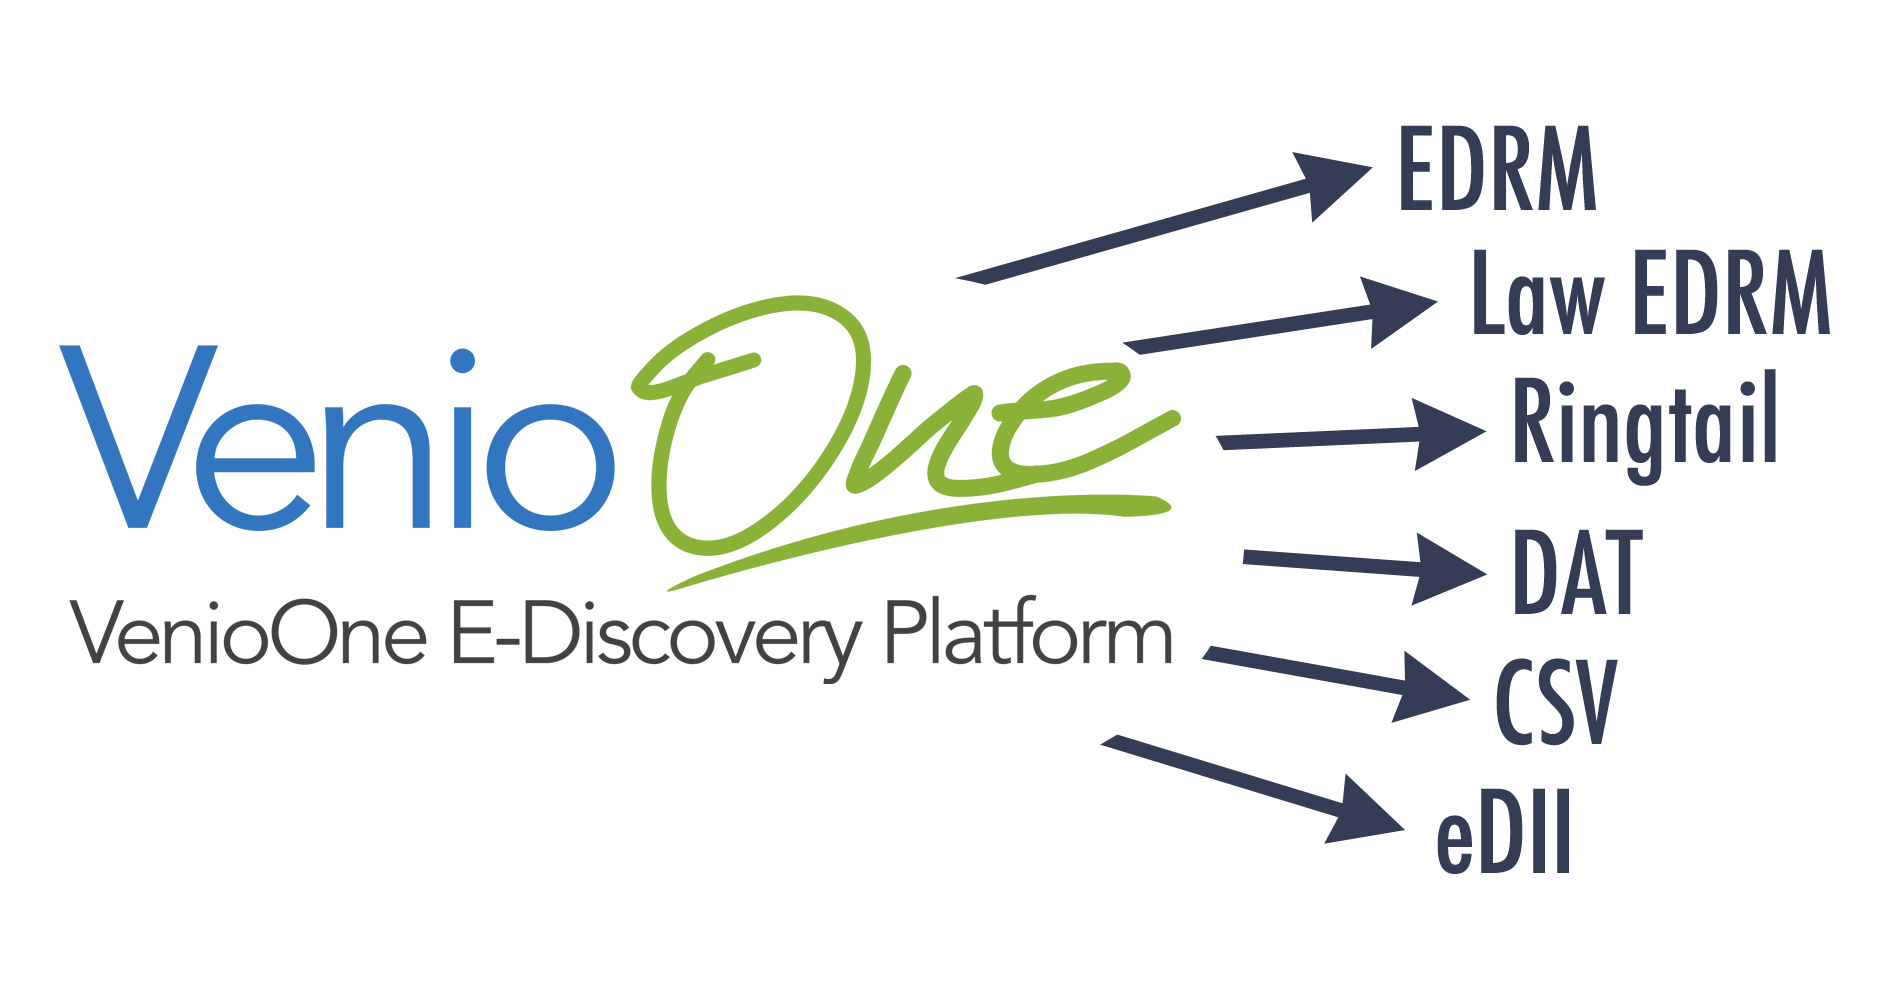 VenioOne can export to various load file types. (EDRM, Law EDRM, Ringtail, DAT, CSV, eDII). The NearZero Discovery service offered by REW Computing includes full end-to-end eDiscovery services for Newmarket, Toronto, the GTA, and Ontario, Canada. ( near zero discovery or nearzerodiscovery )